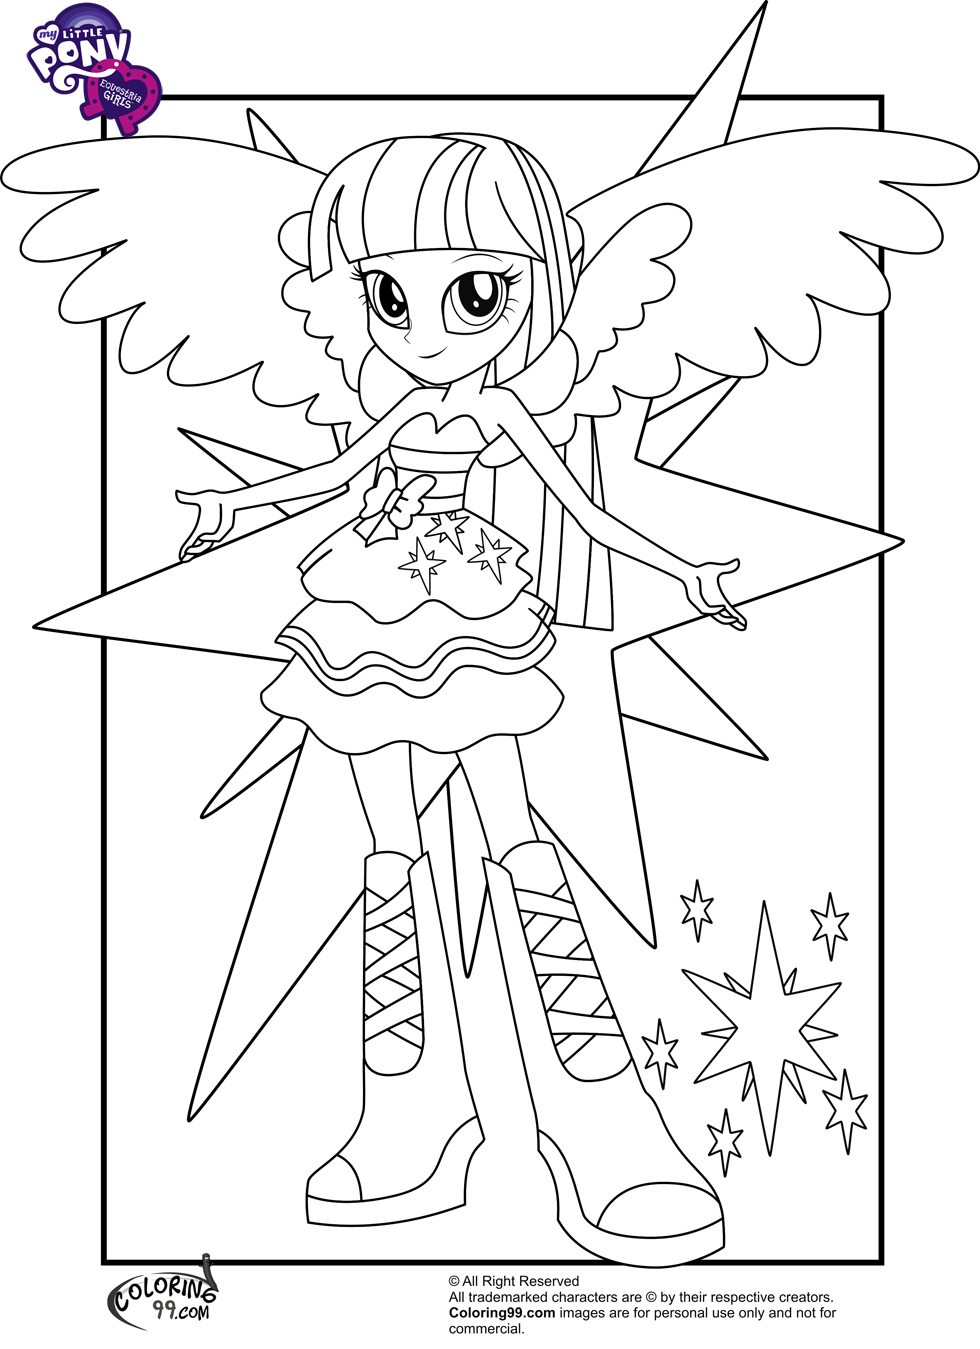 My Little Pony Equestria Girls Coloring Pages Team Colors My Pony Equestria Coloring Pages